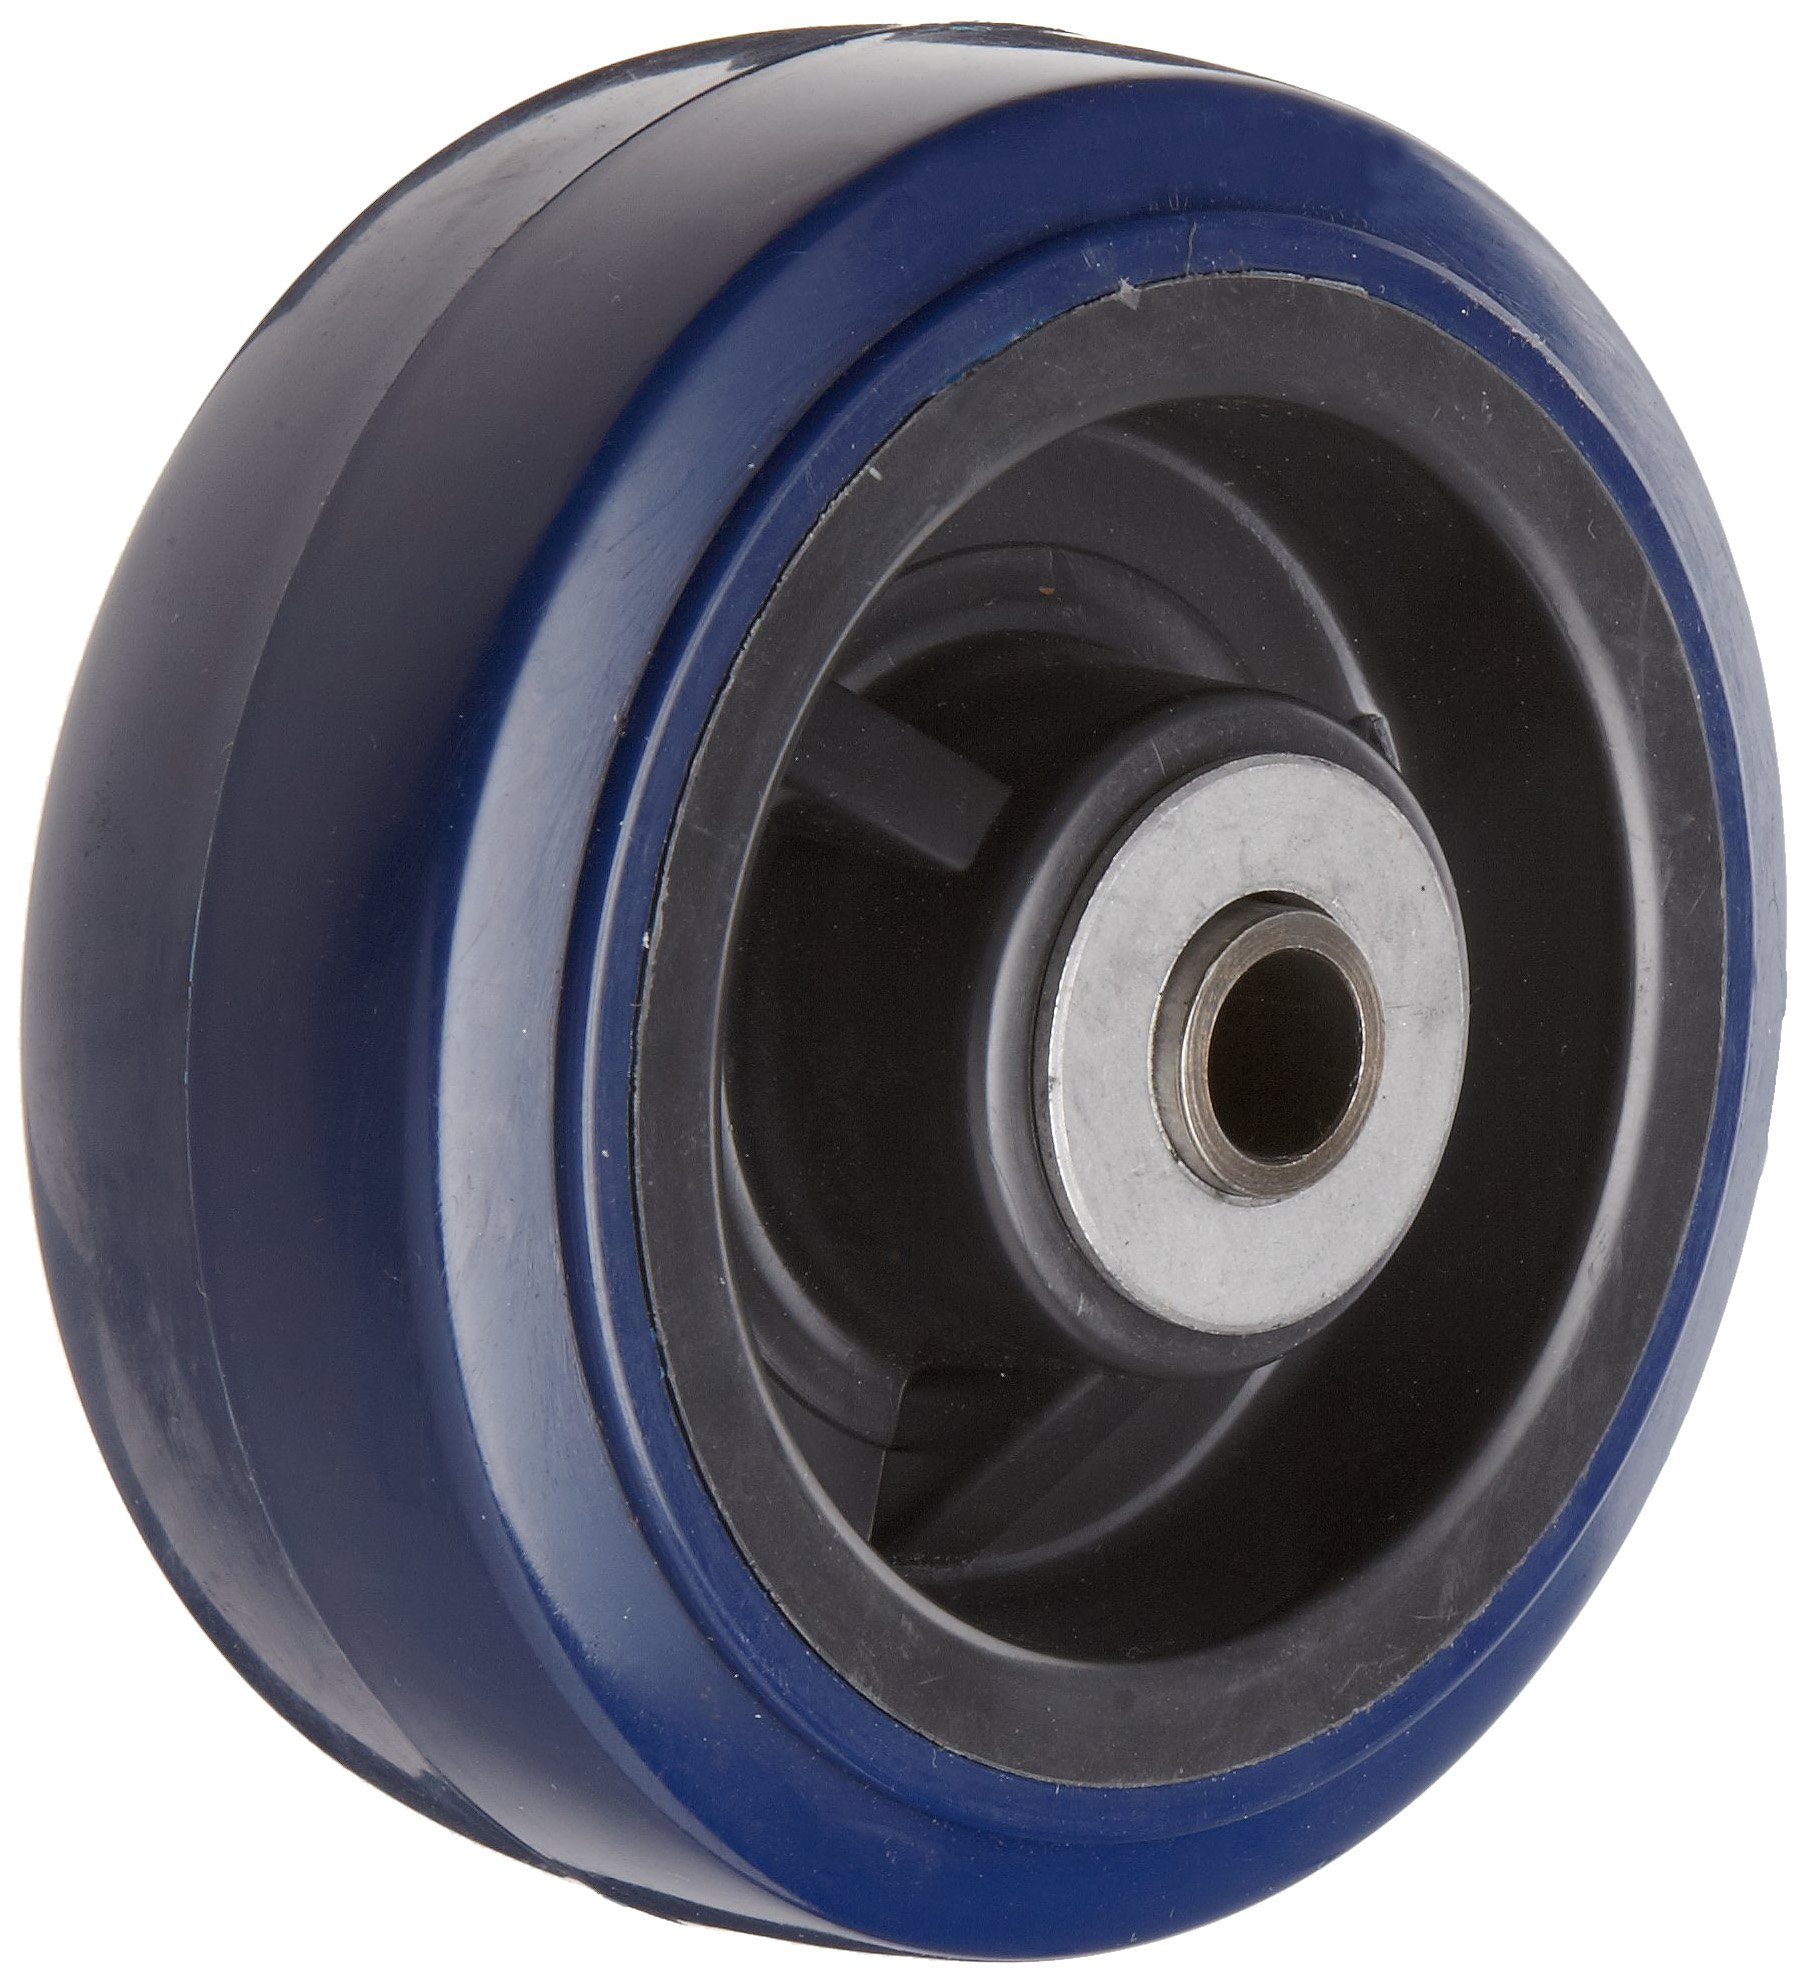 RWM Casters UPR-0520-08 5'' Diameter X 2'' Width Urethane On Polypropylene Wheels With Straight Roller Bearing, 750 lbs Capacity